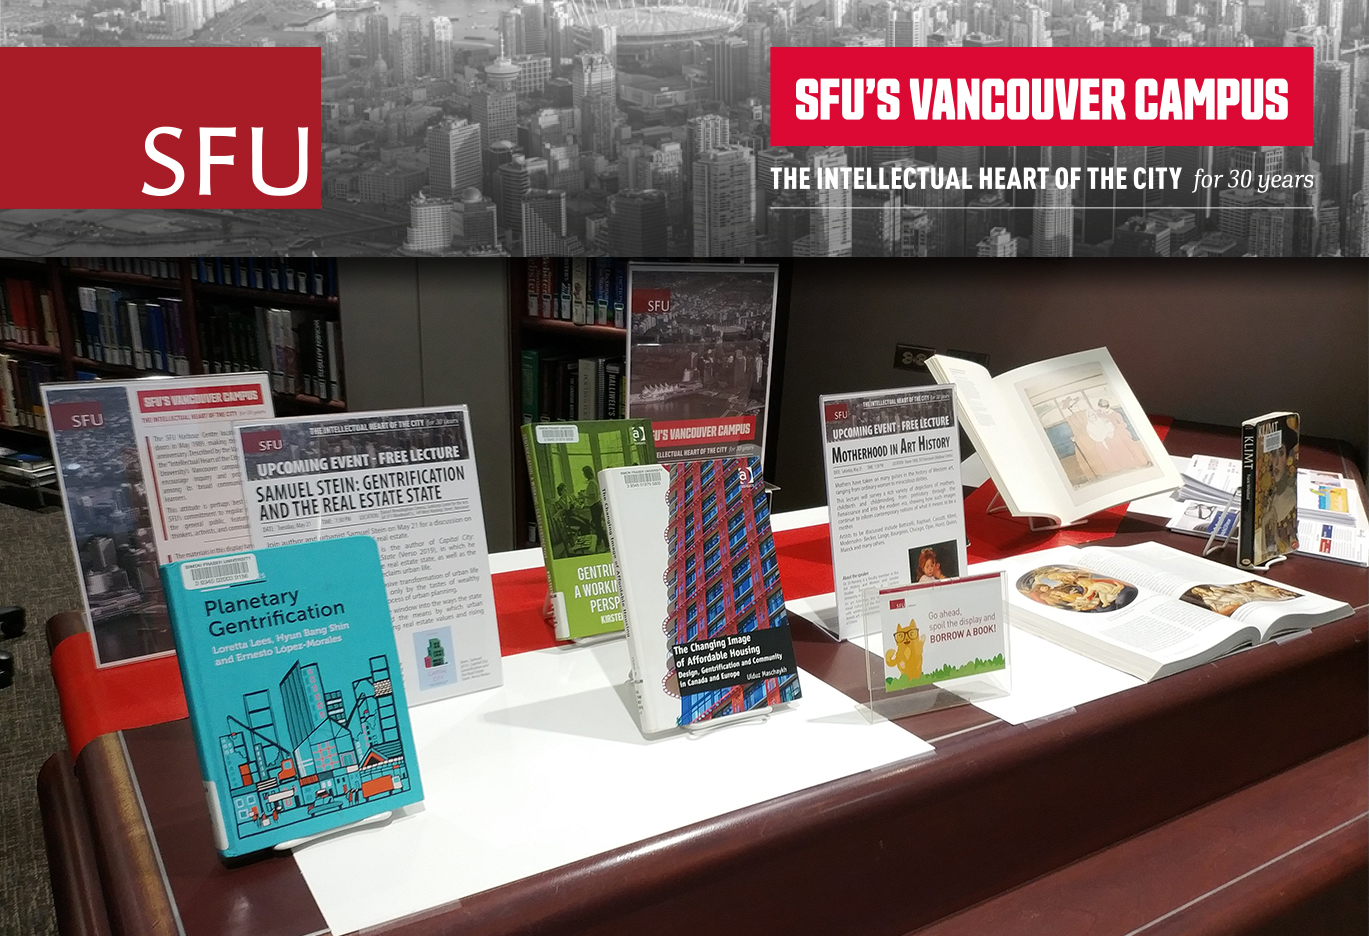 Belzberg Library display featuring books relating to upcoming campus events.